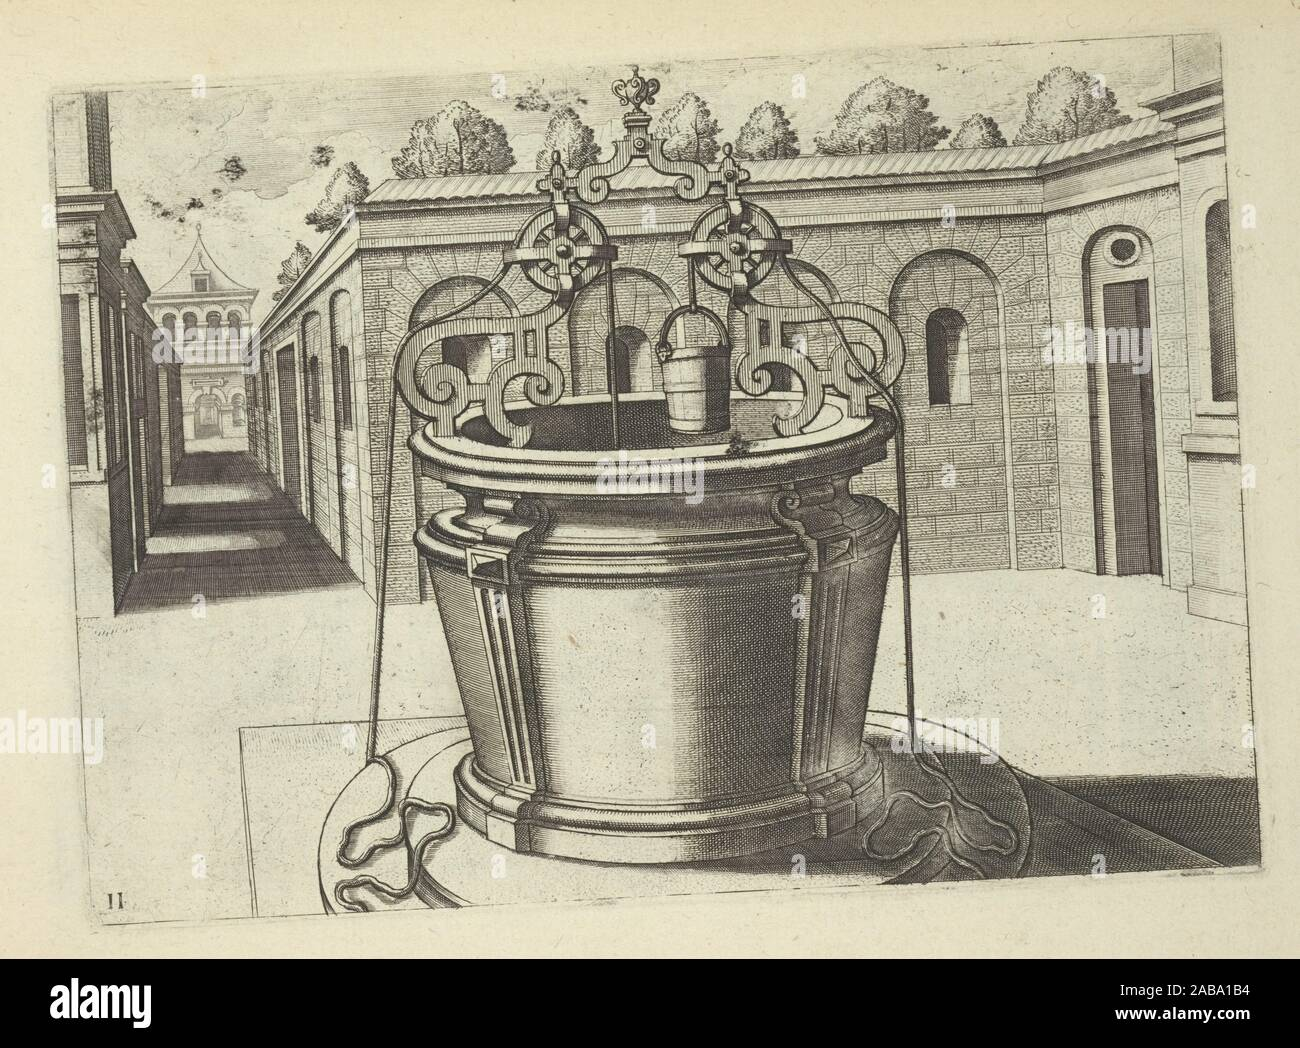 Double pulley well in plaza. Vredeman de Vries, Hans, 1527-ca. 1604 (Author) Galle, Philippe, 1537-1612 (Engraver). Puits et Fontaines: Magnifico Stock Photo